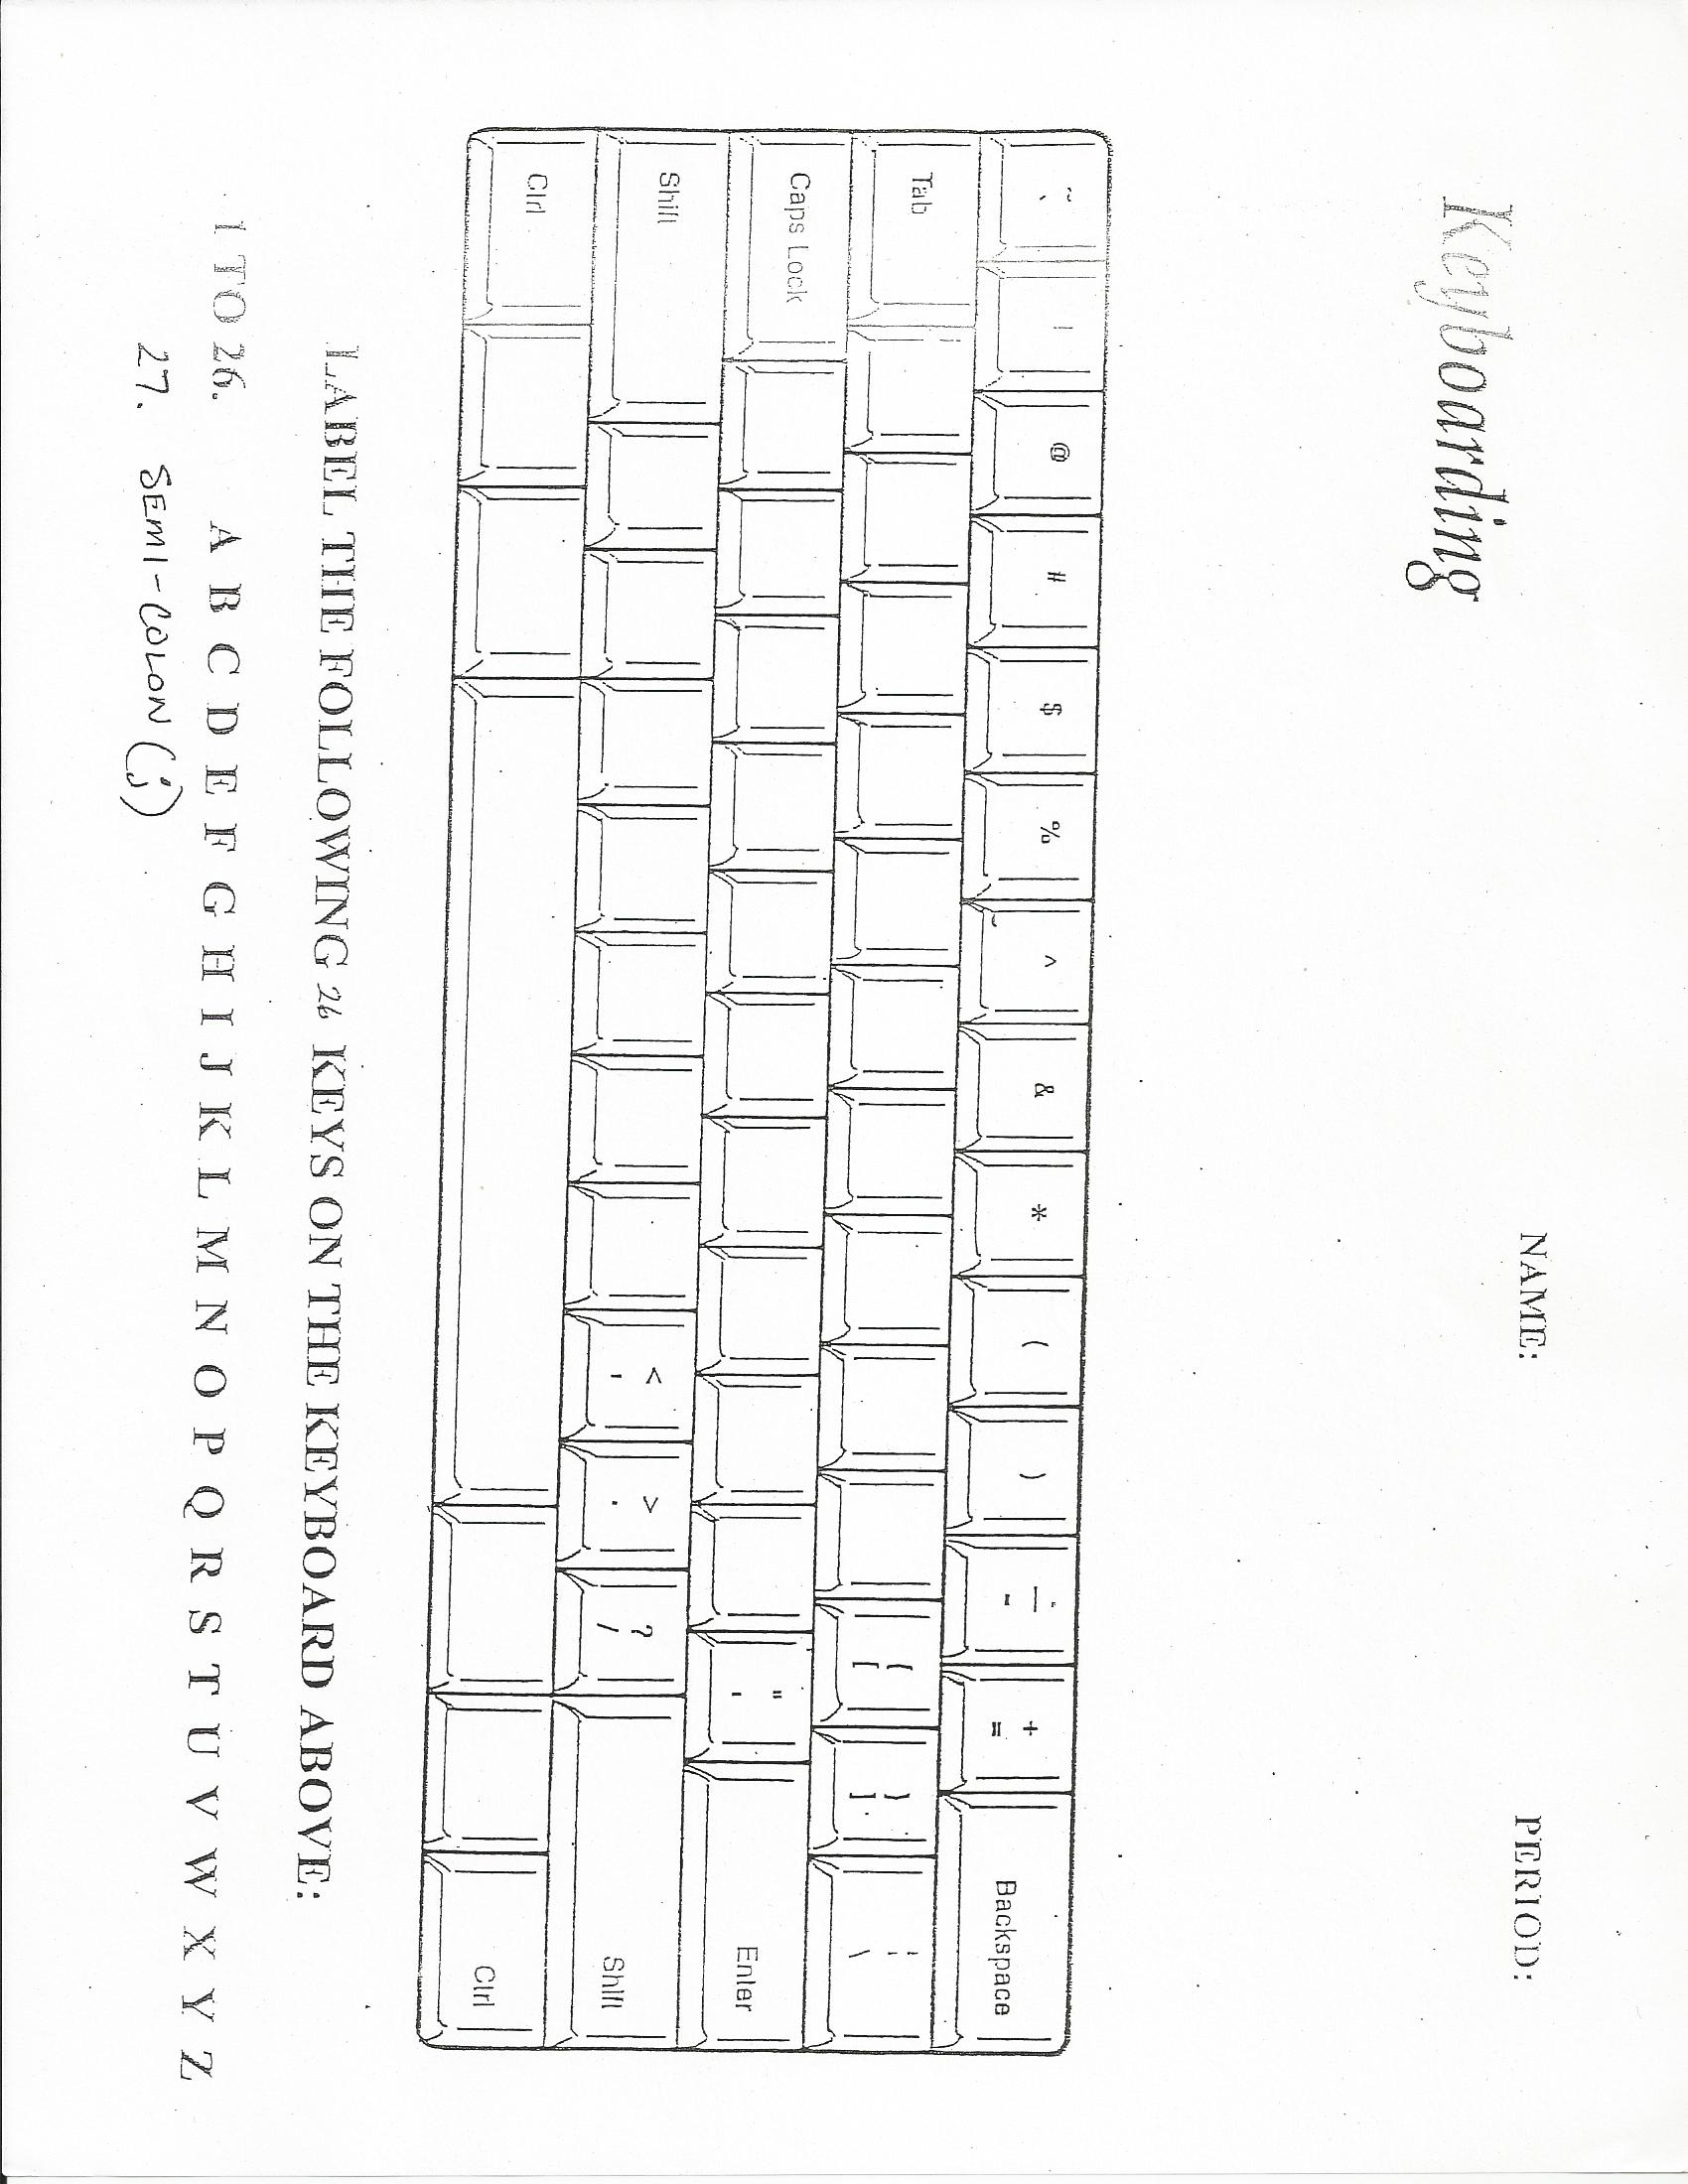 16 Best Images Of Keyboarding Worksheets For Students